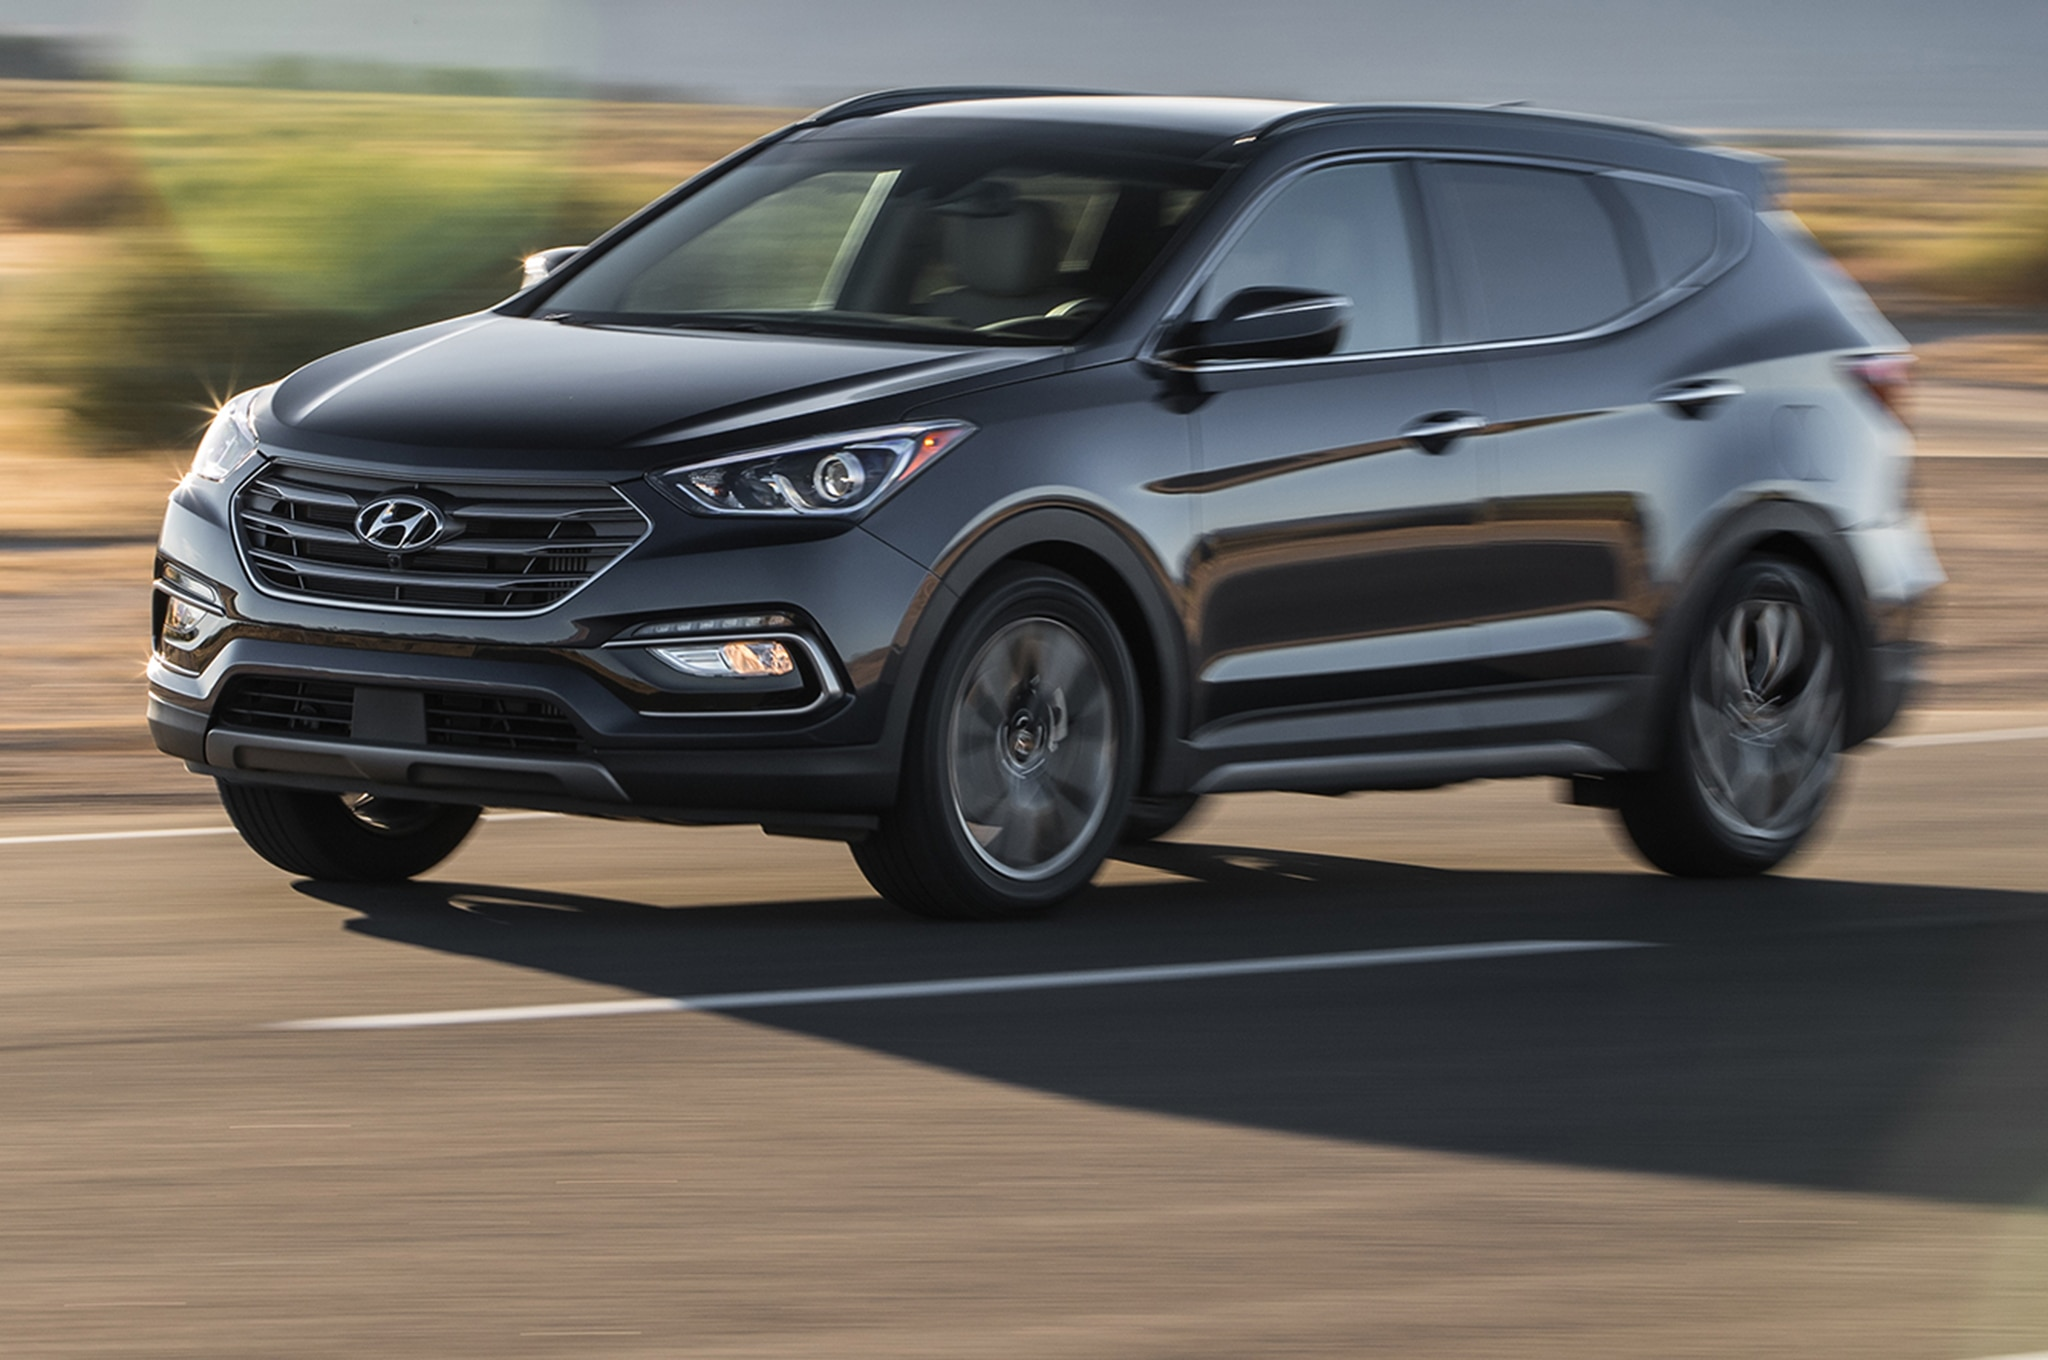 2018 Hyundai Santa Fe Sport Front Three Quarter In Motion 02 1